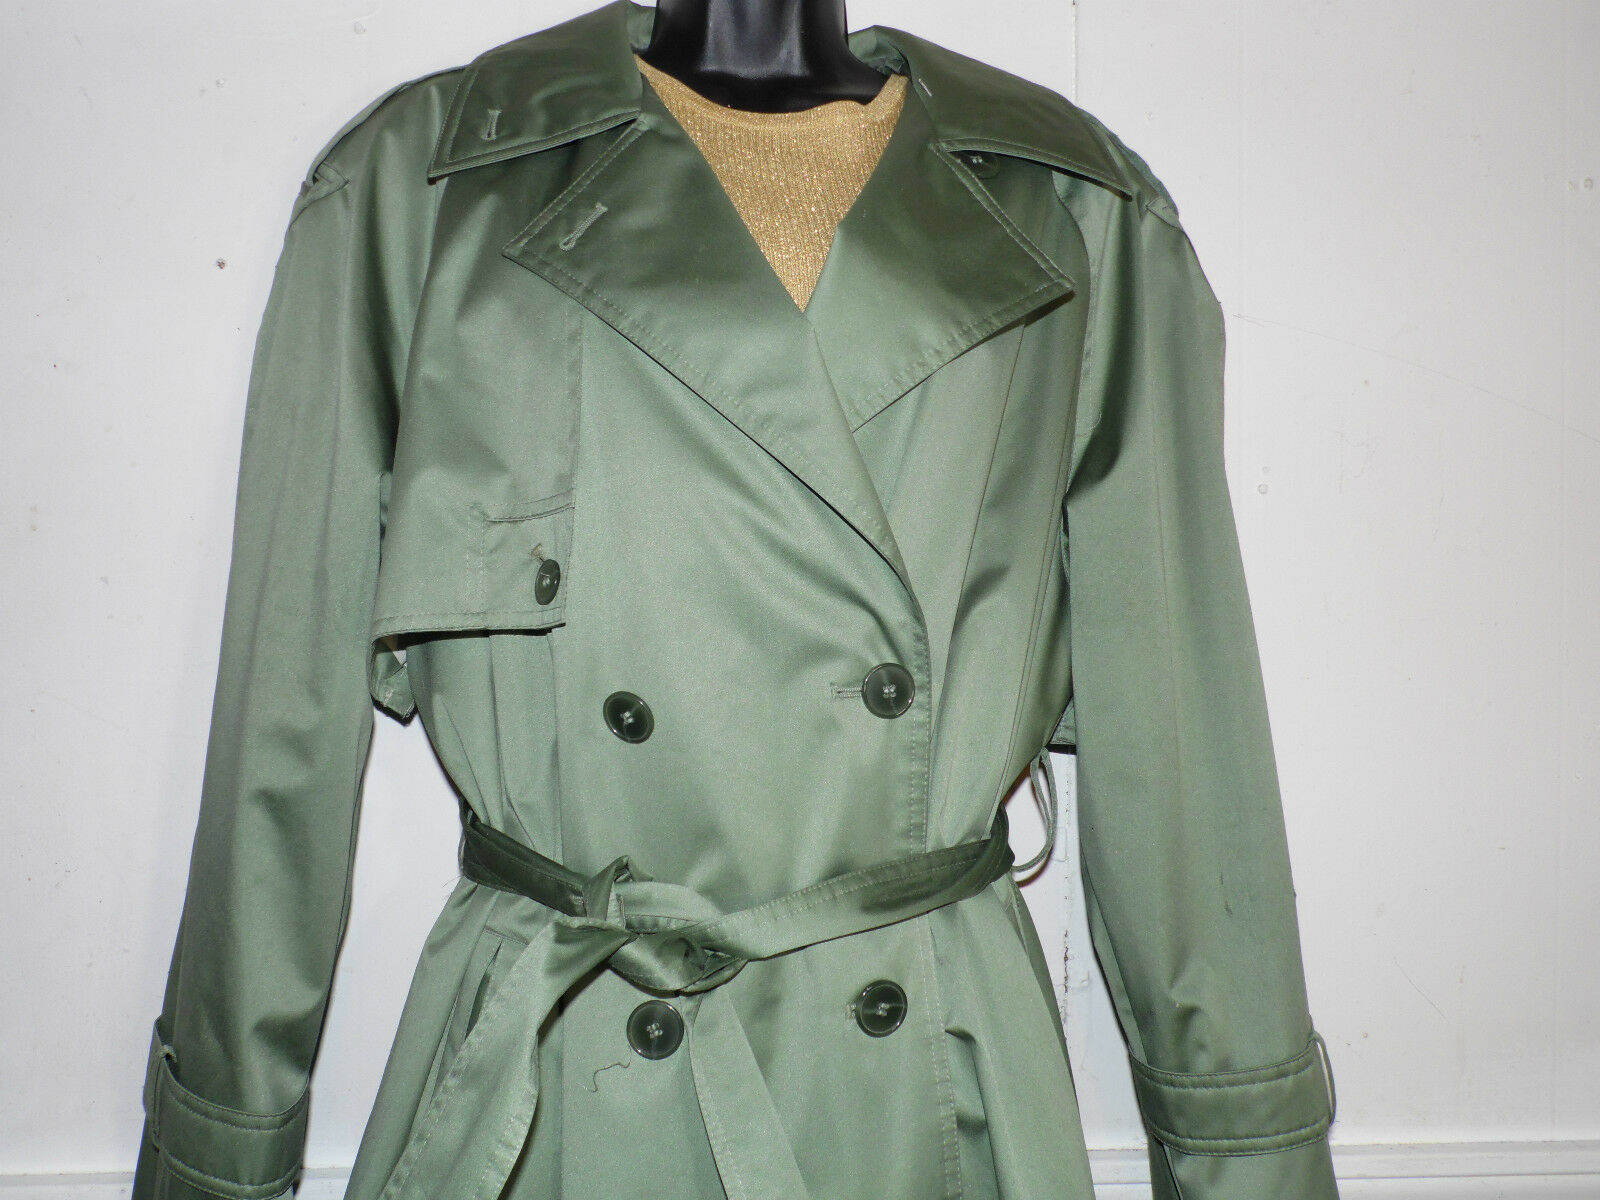 Towne London Fog Trench Coat Green 8 Satin Look Double Breasted